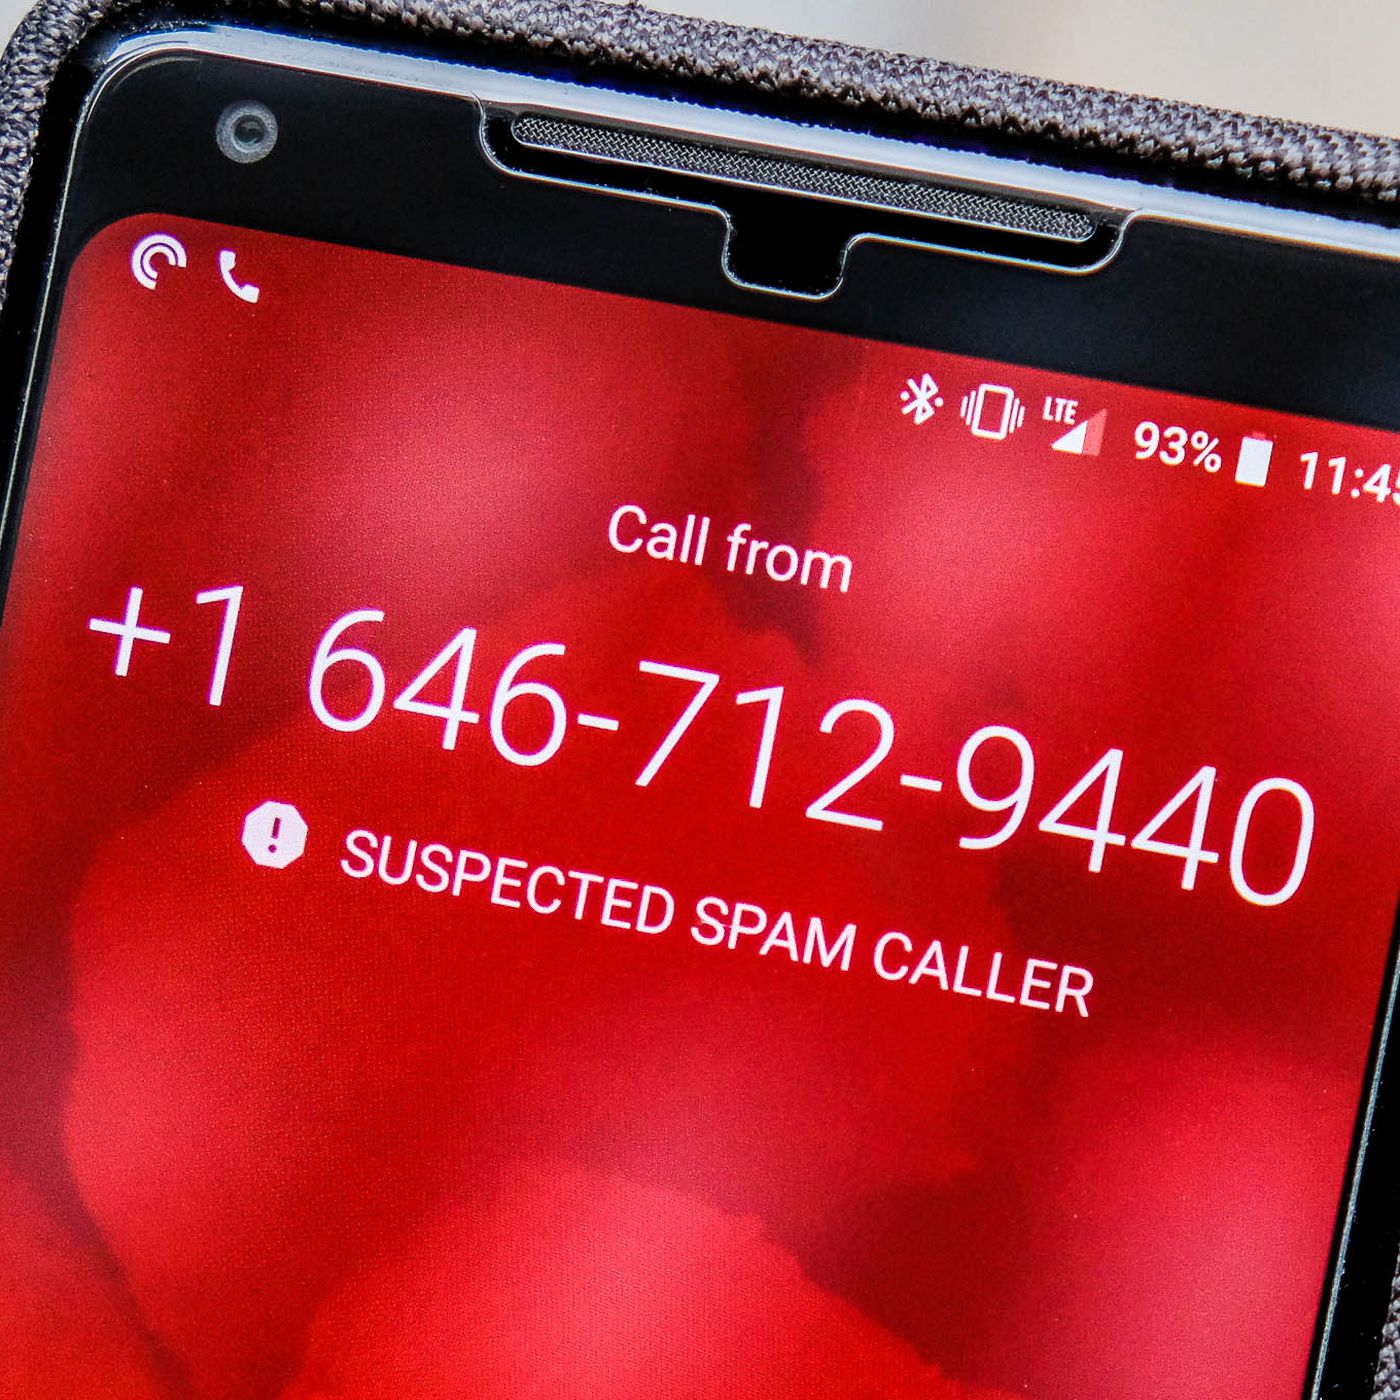 Spam calls: how to stop the robots from calling your iPhone or Android -  The Verge